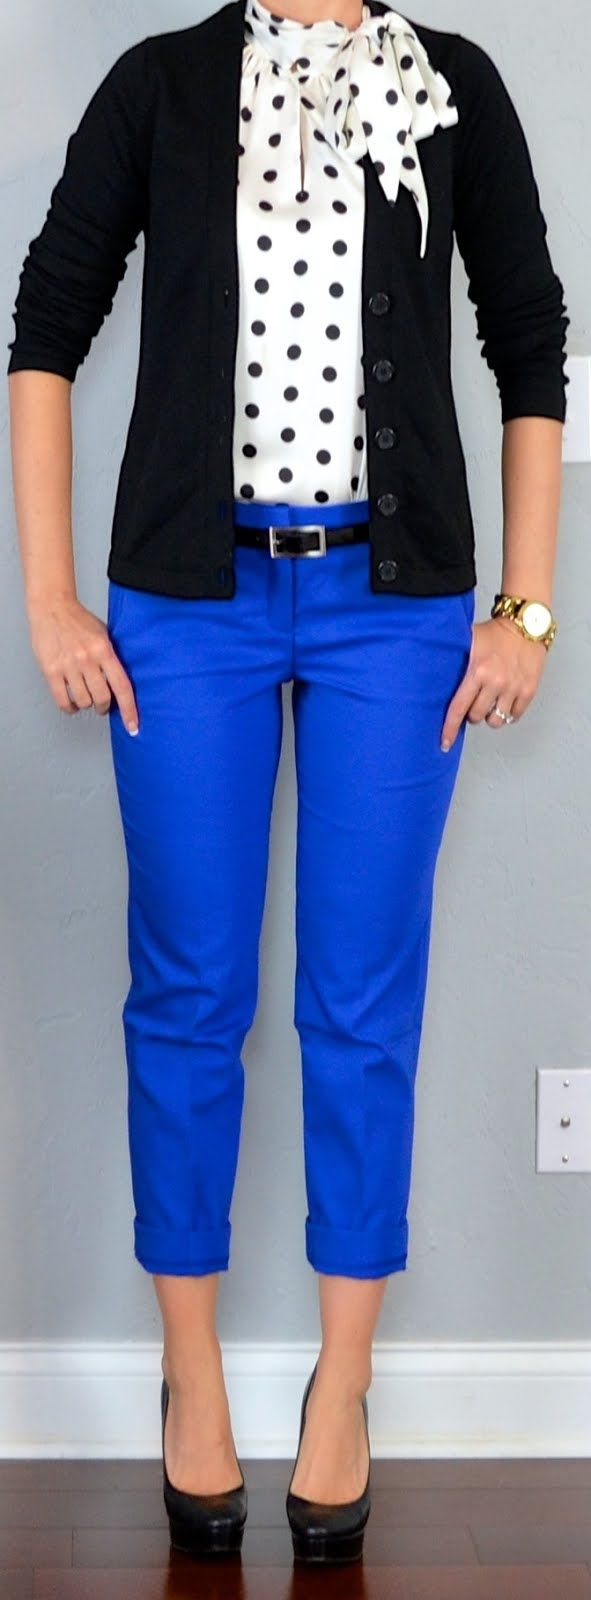 outfit posts: black cardigan, polka-dot tie-neck blouse, blue cropped pants | Outfit Posts Dynamic